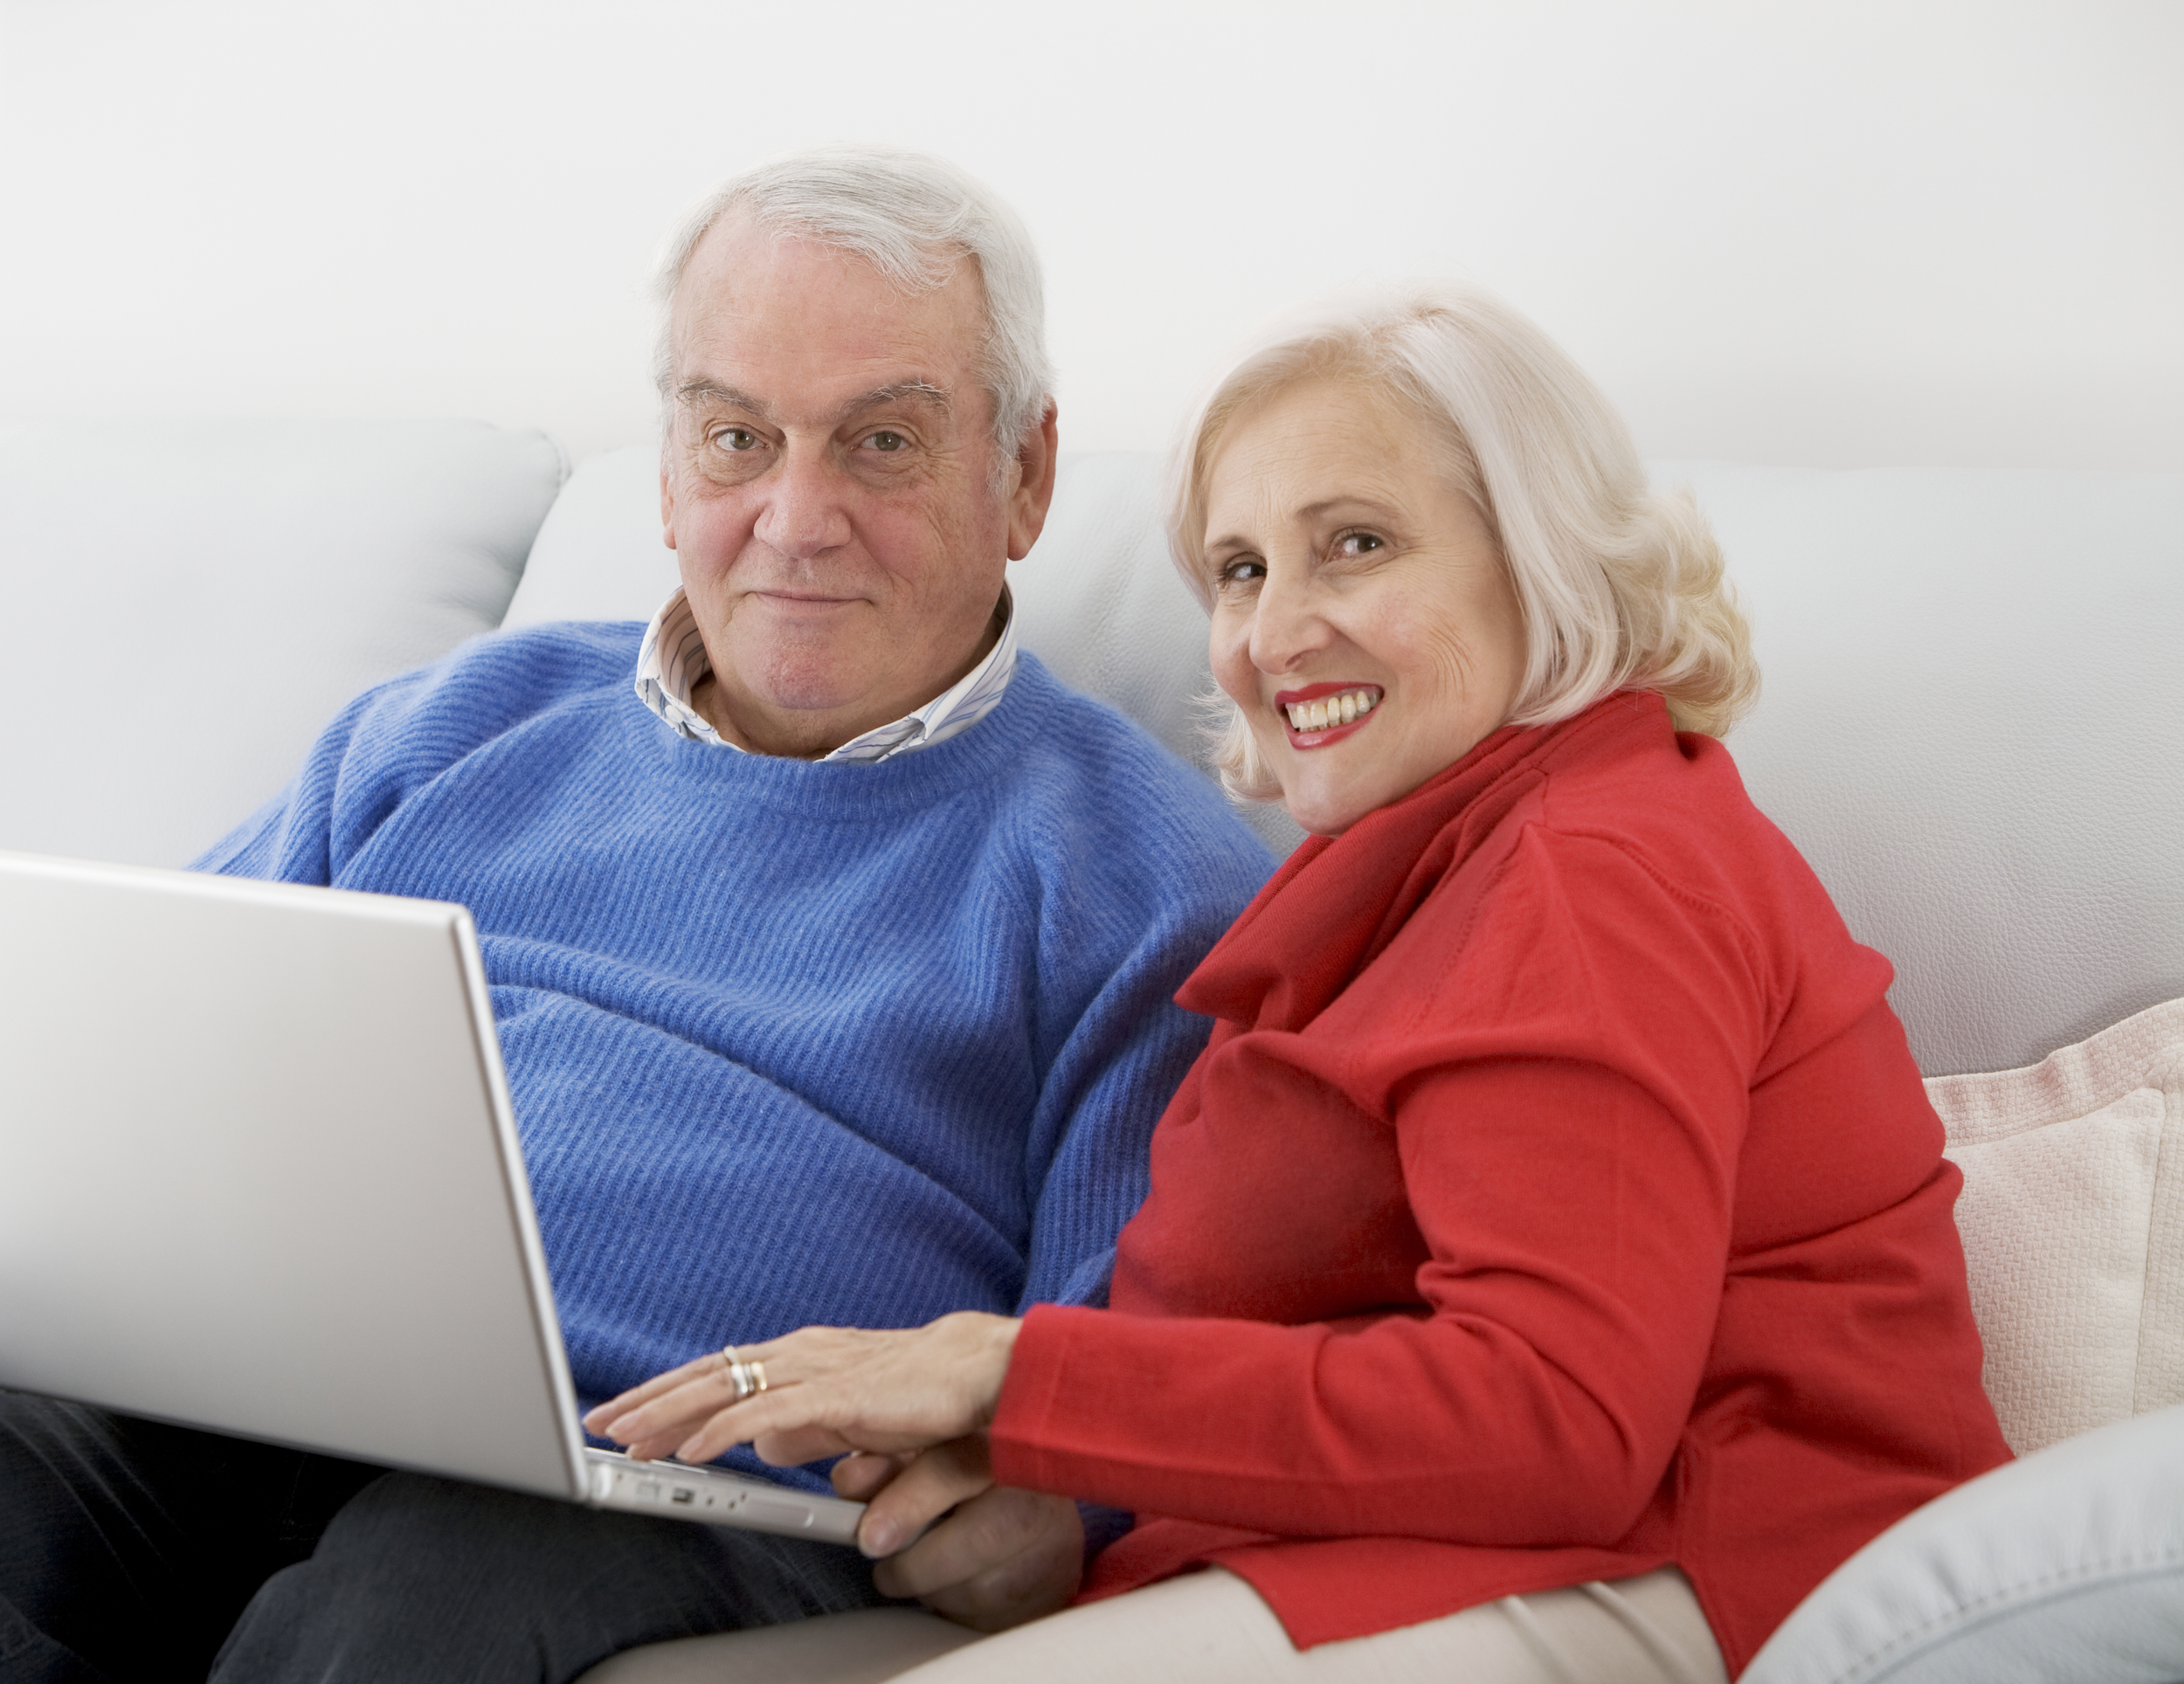 Older Couple Tutoring @ Home Computer Services Brian Myers 5110350_Large.jpg